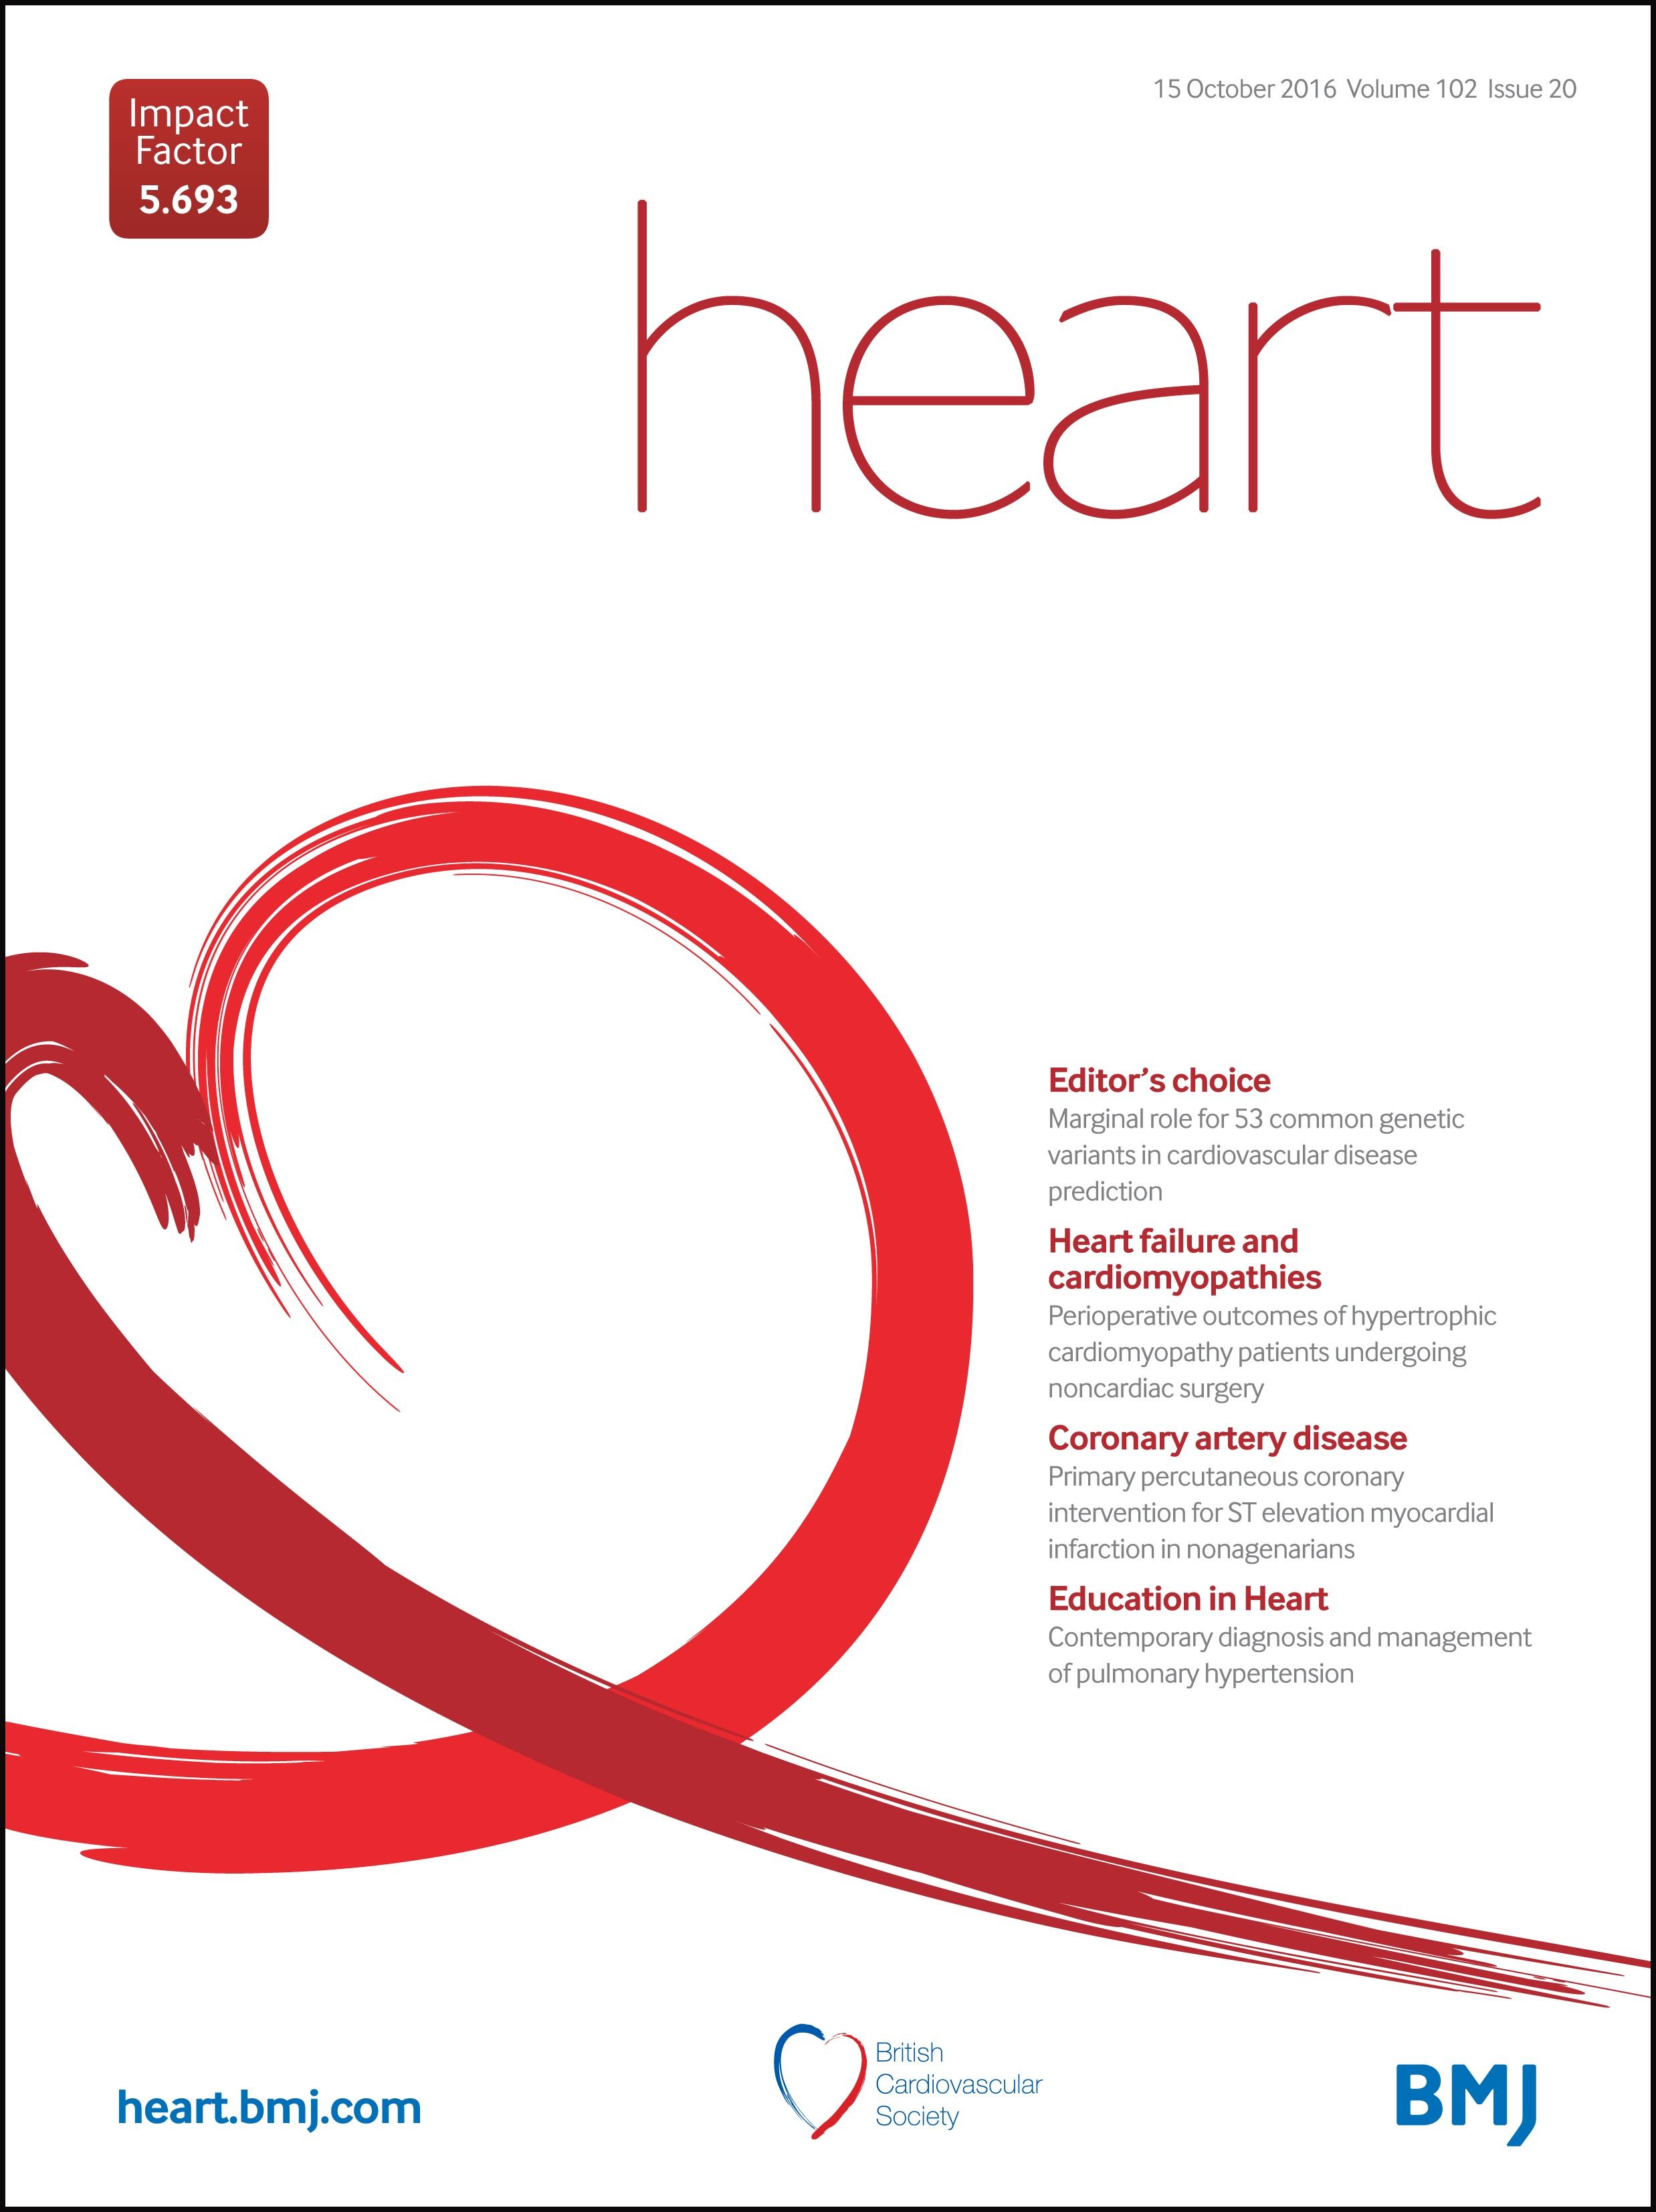 Primary percutaneous coronary intervention for ST elevation